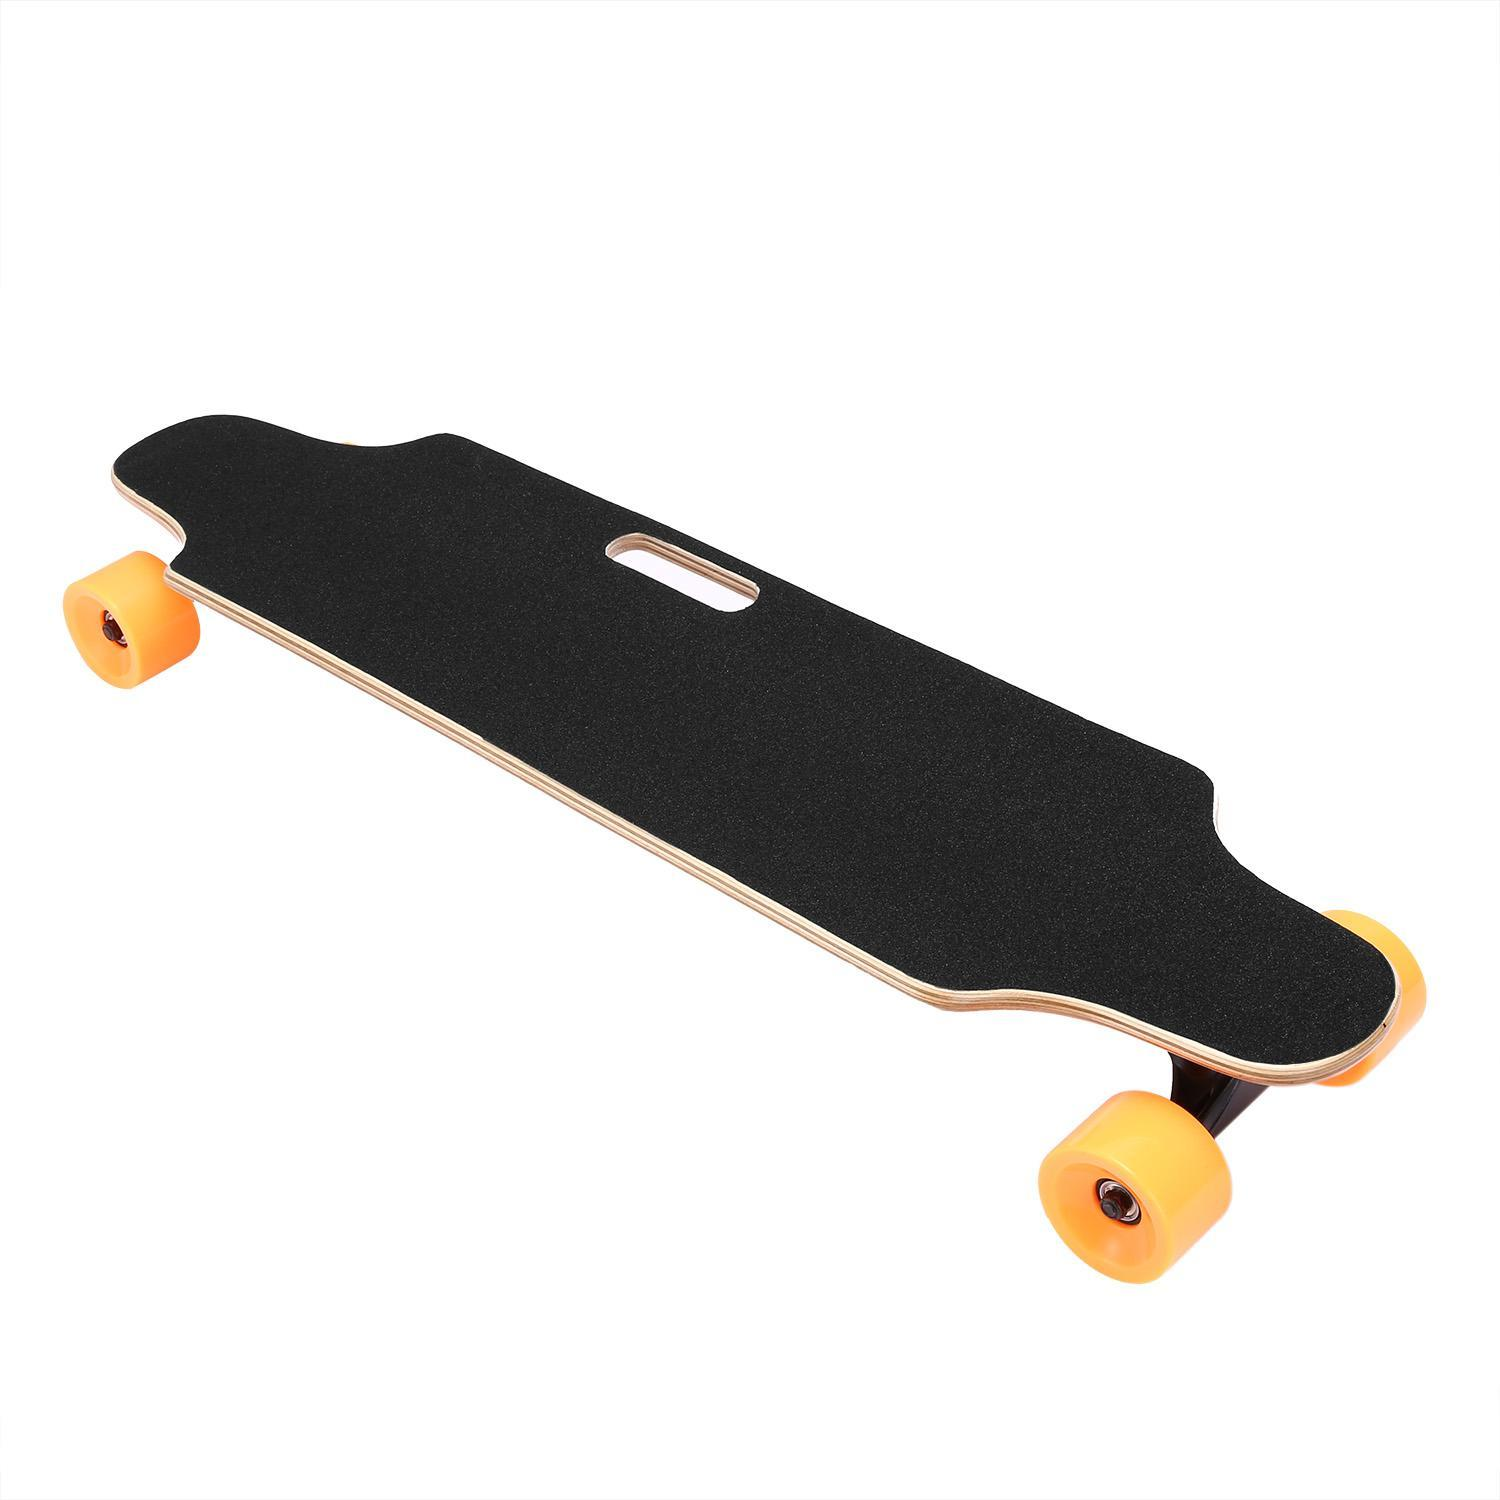 Hifashion Electric Skateboard Longboard with Remote Controller HFON by